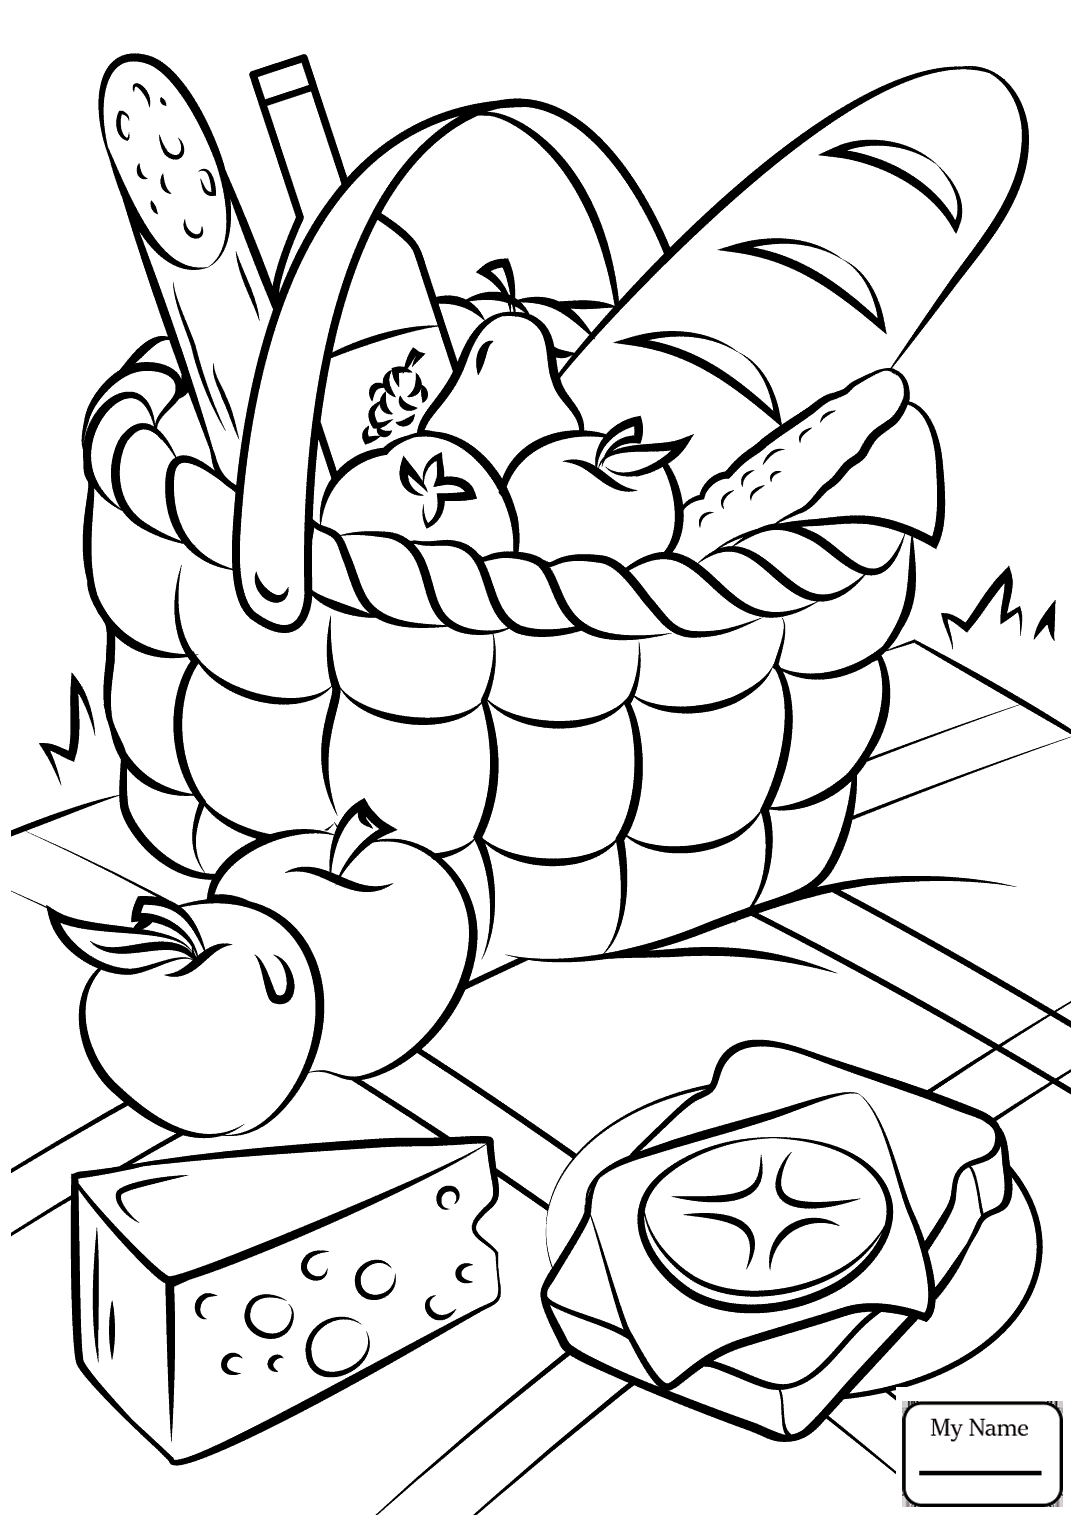 picnic table coloring page picnic table drawing at getdrawings free download page picnic coloring table